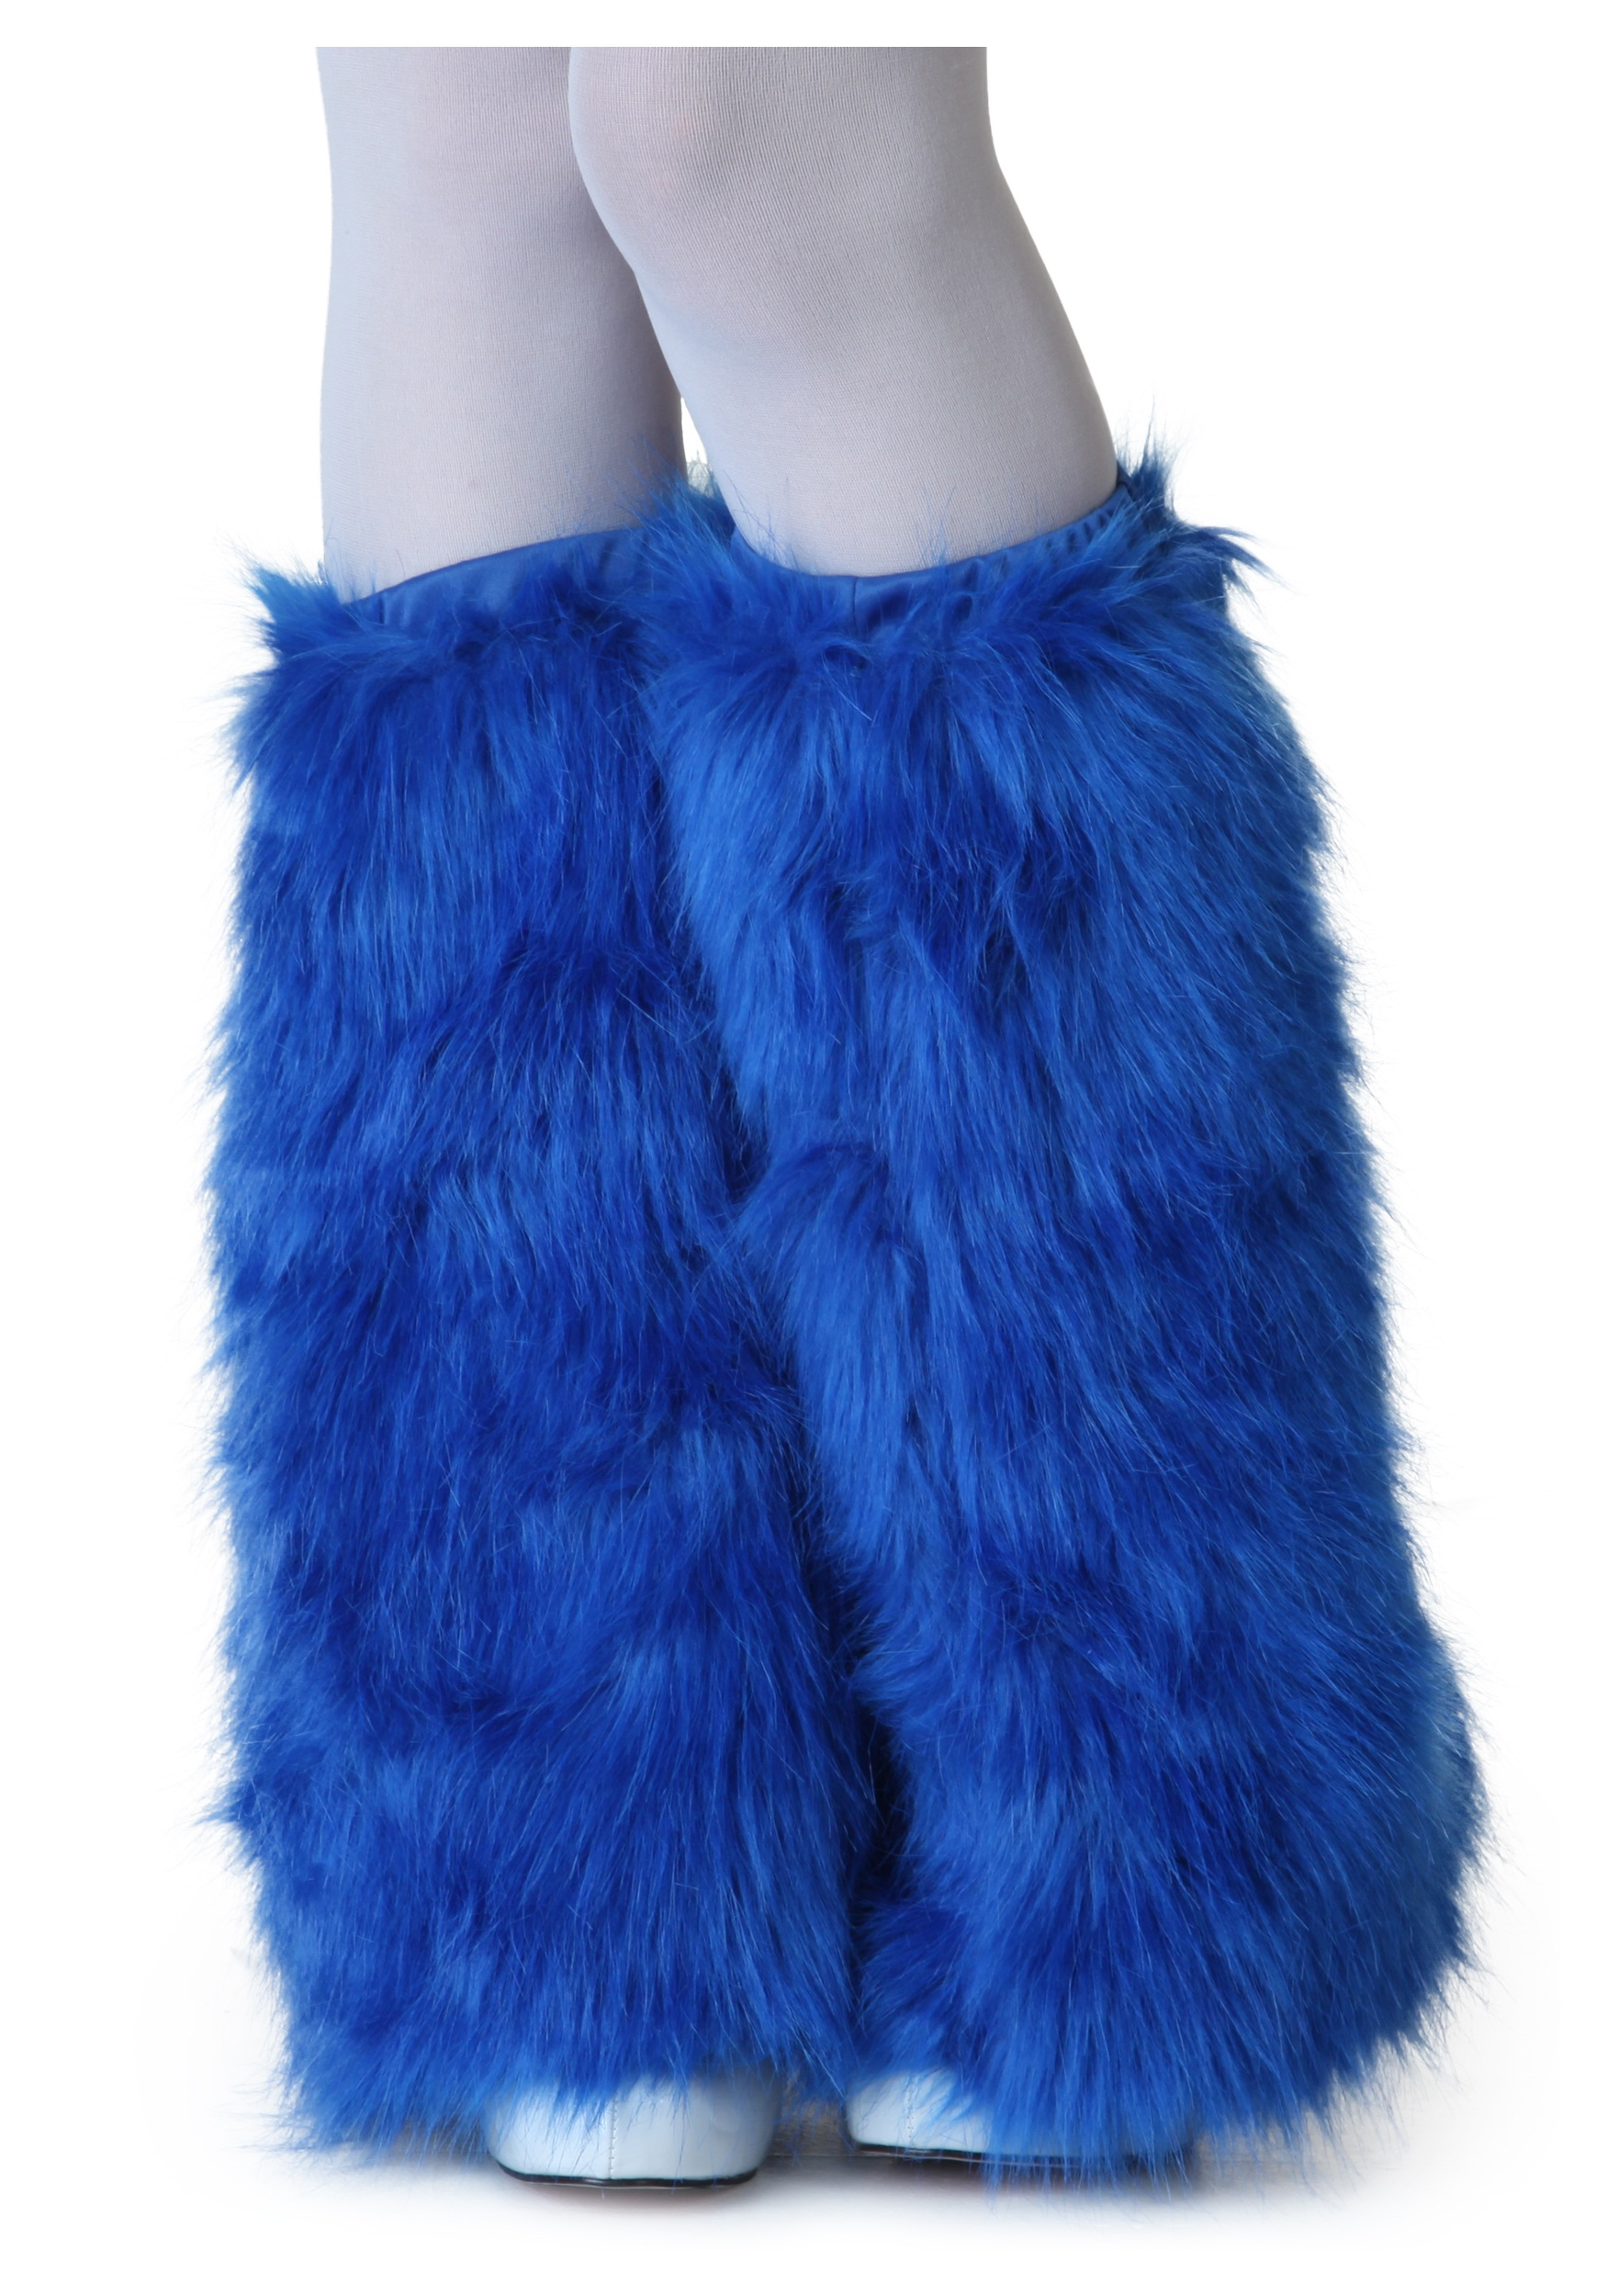 Adult Royal Blue Furry Boot Covers